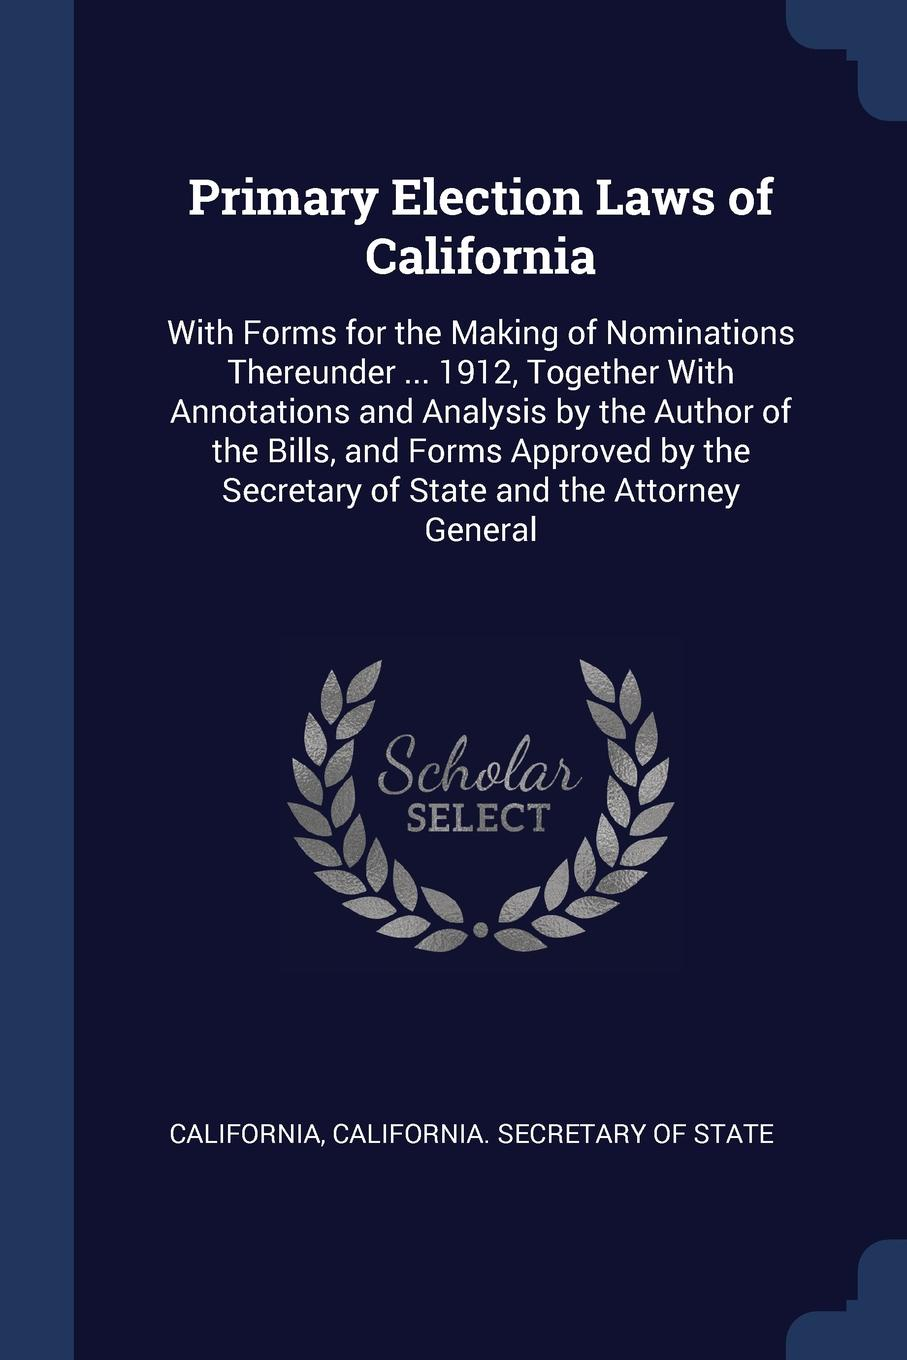 California Primary Election Laws of California. With Forms for the Making Nominations Thereunder ... 1912, Together Annotations and Analysis by Author Bills, Approved Secretary State Attorney General